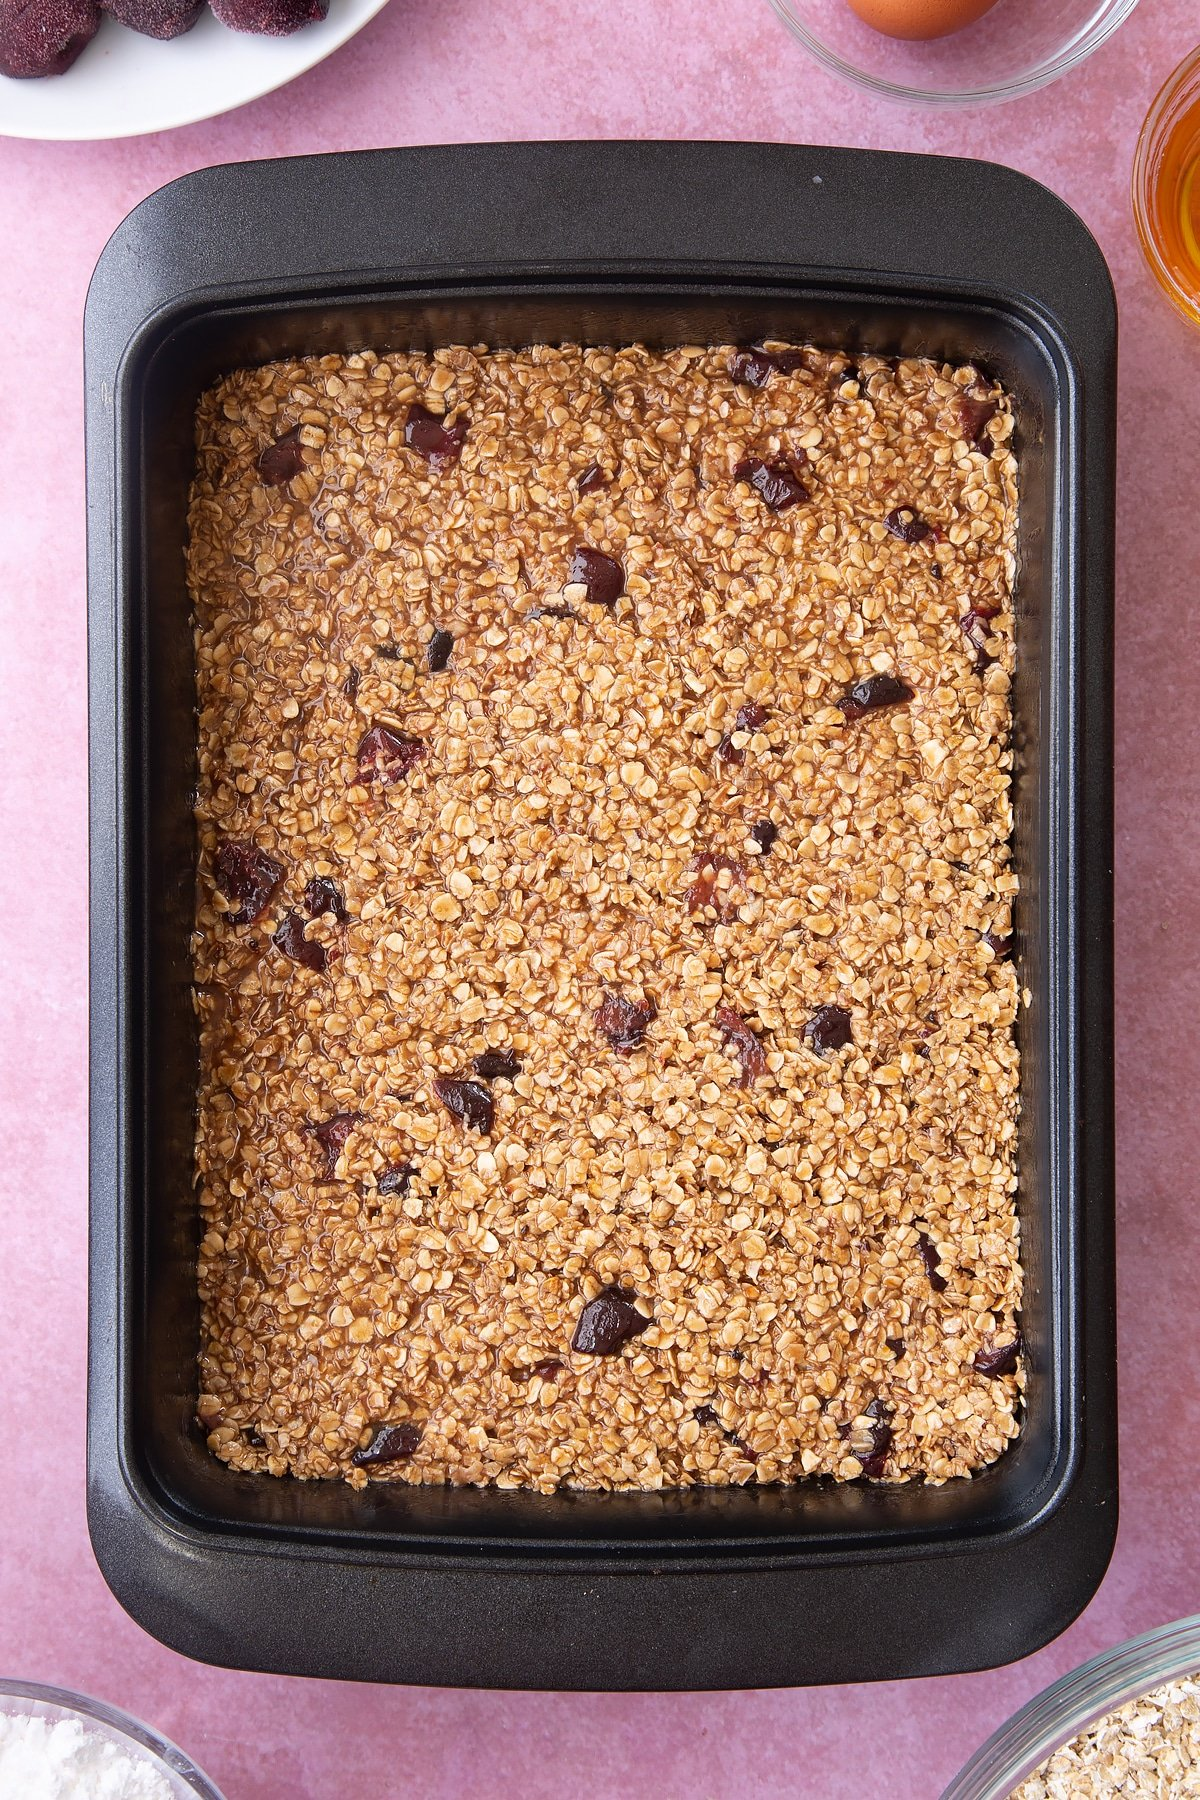 Overhead shot of flattened oats mix in a black baking tin